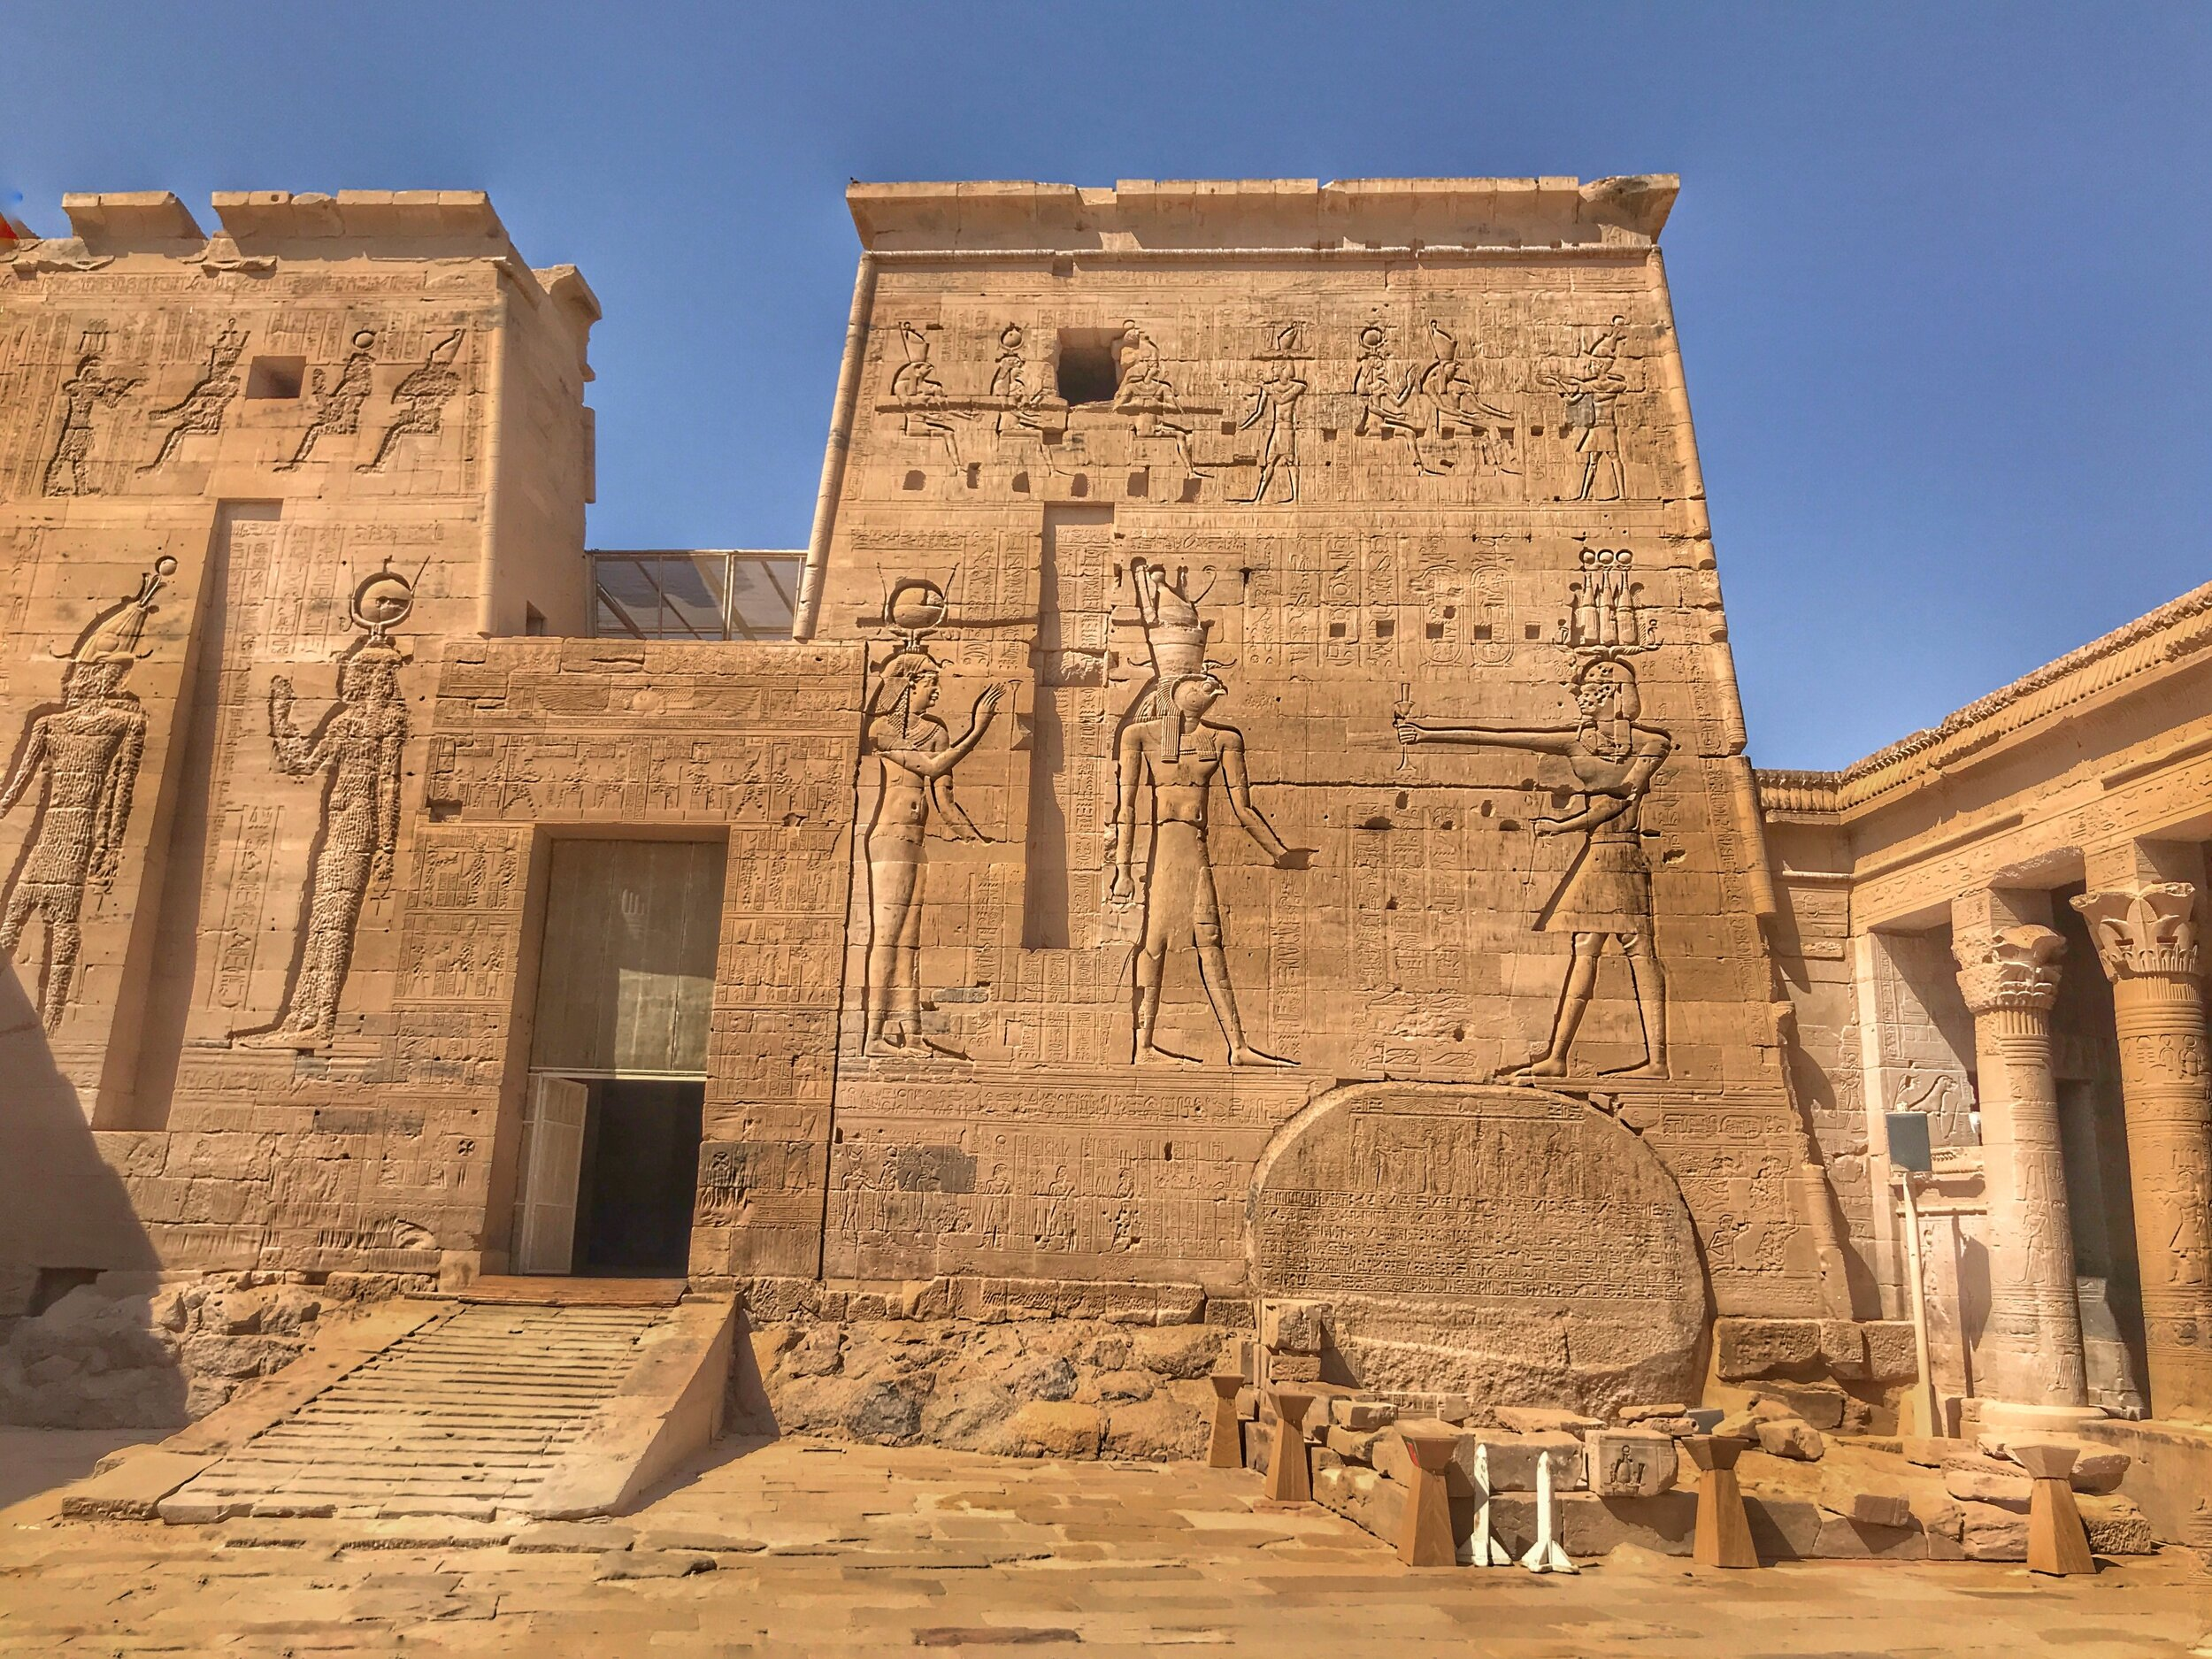 The first pylon, or entrance tower, at Philae Temple